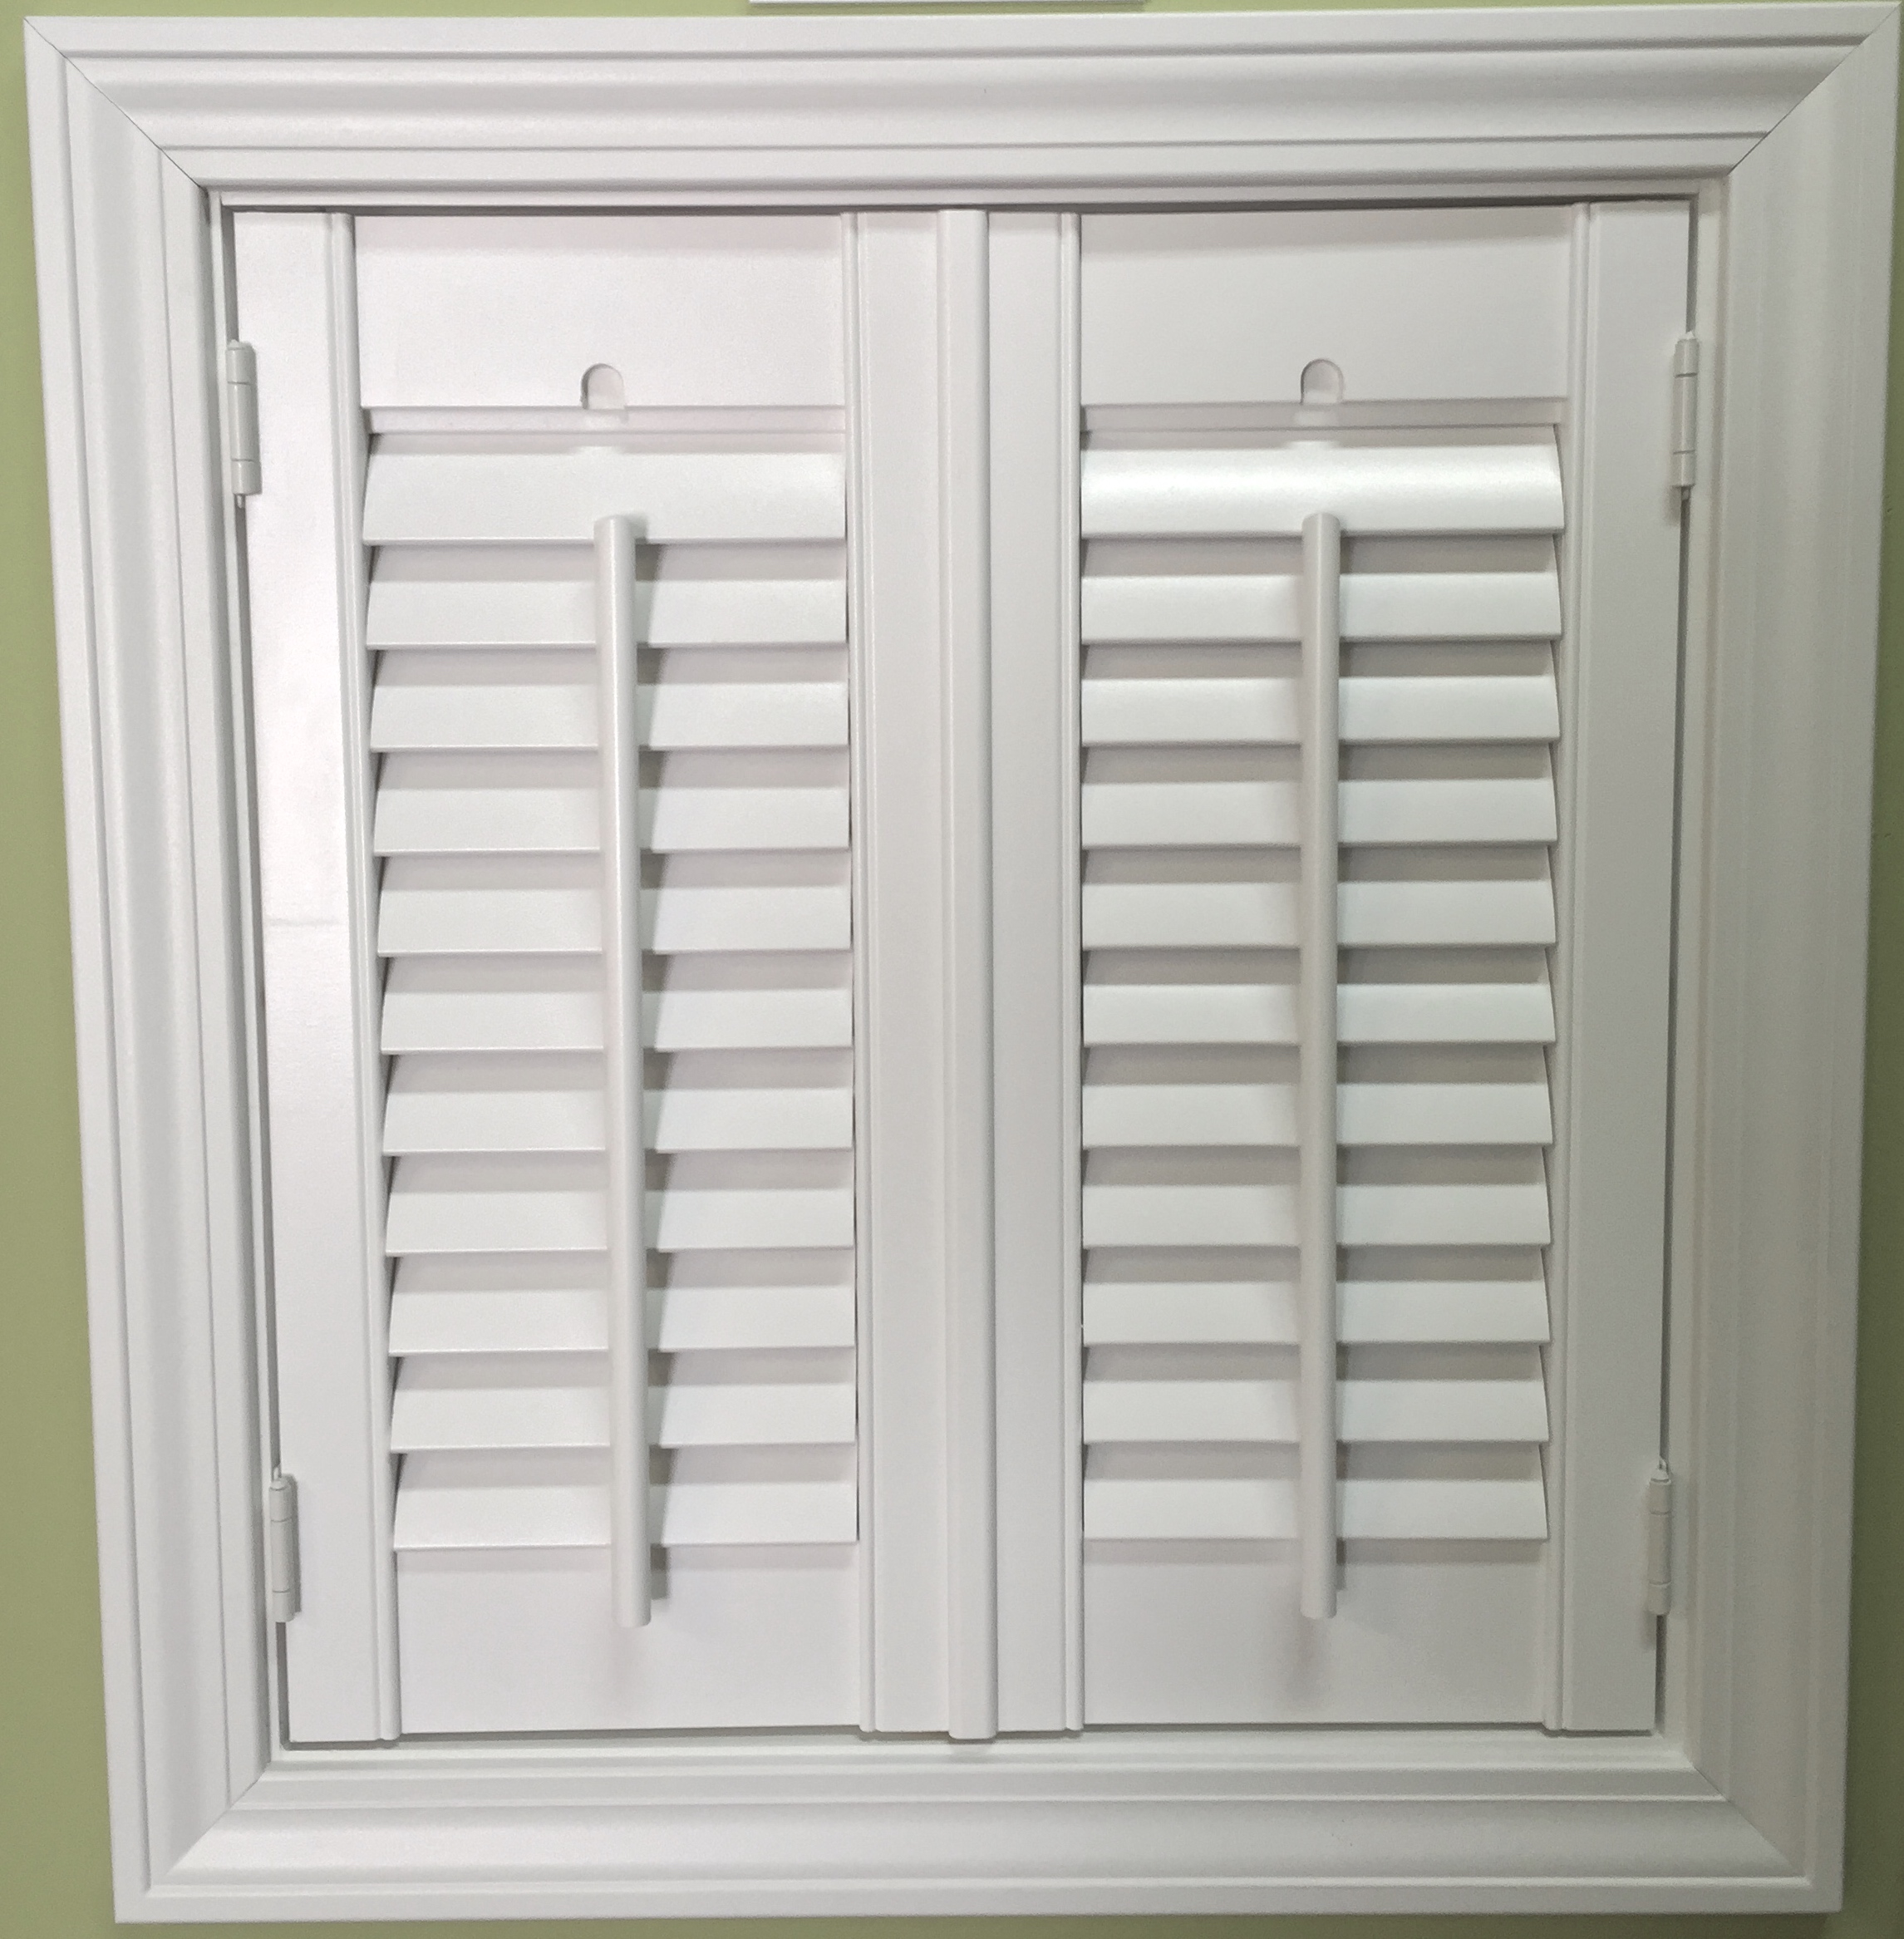 hinges less designer to fastest articles no about the shutters include but are express shutter simply of quality news weswood way series interior plantation wood strictly